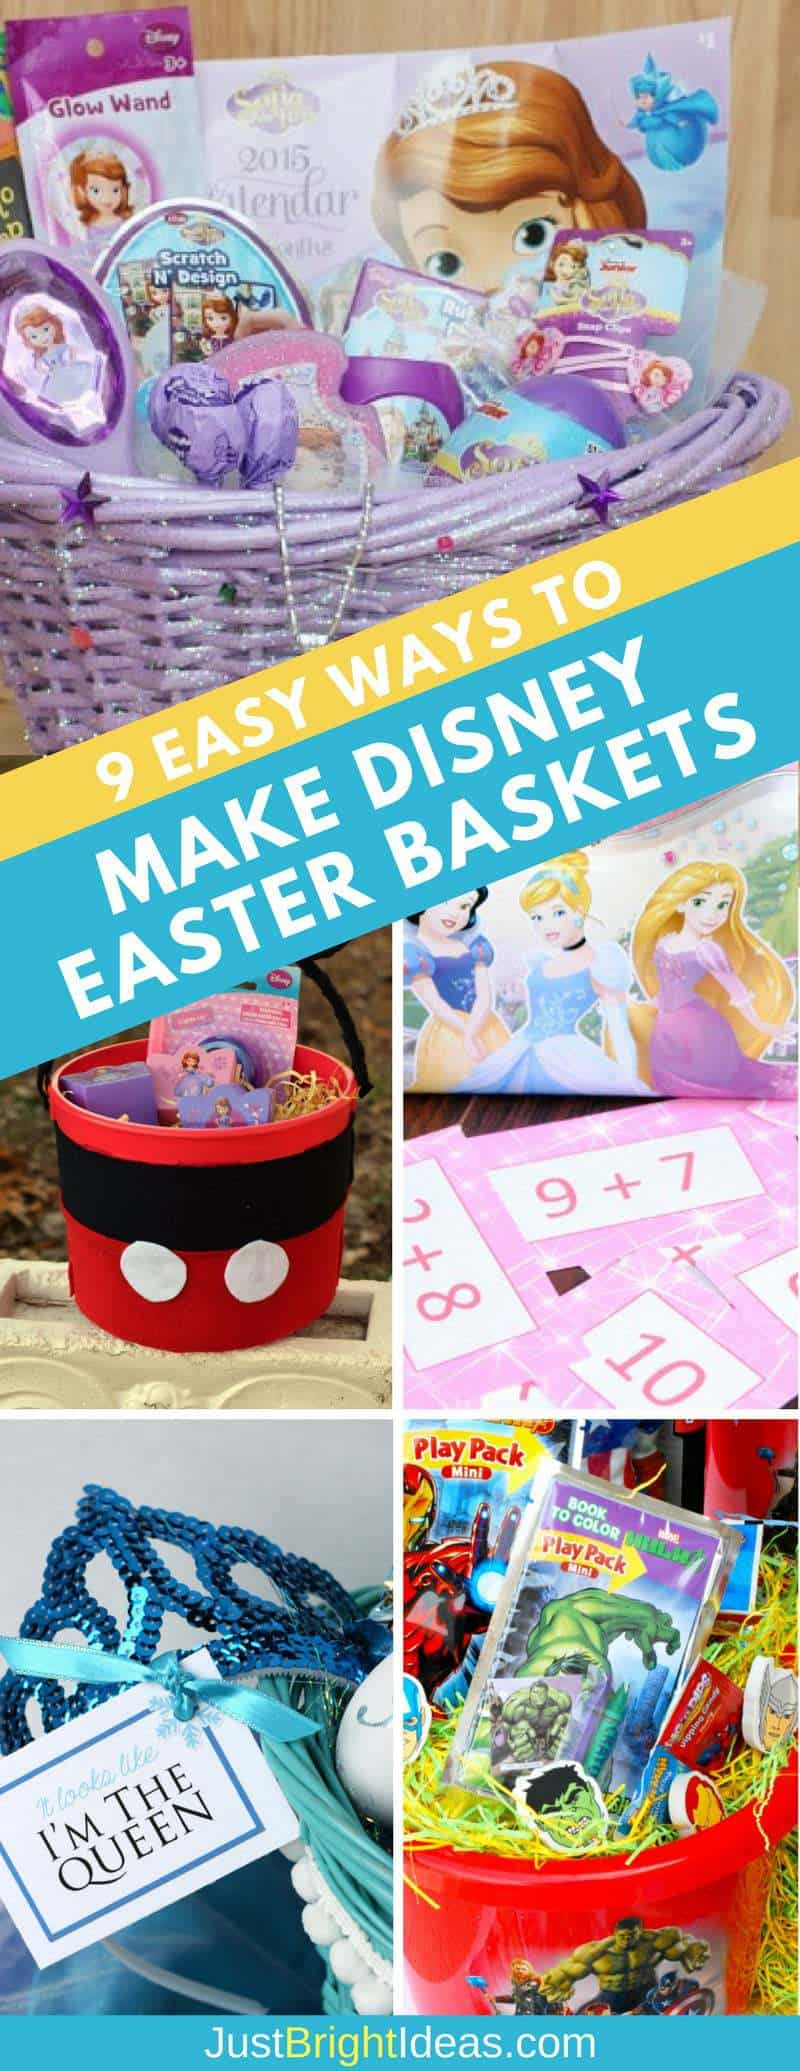 Easy Ways to Make Disney Easter Baskets - Pinterest